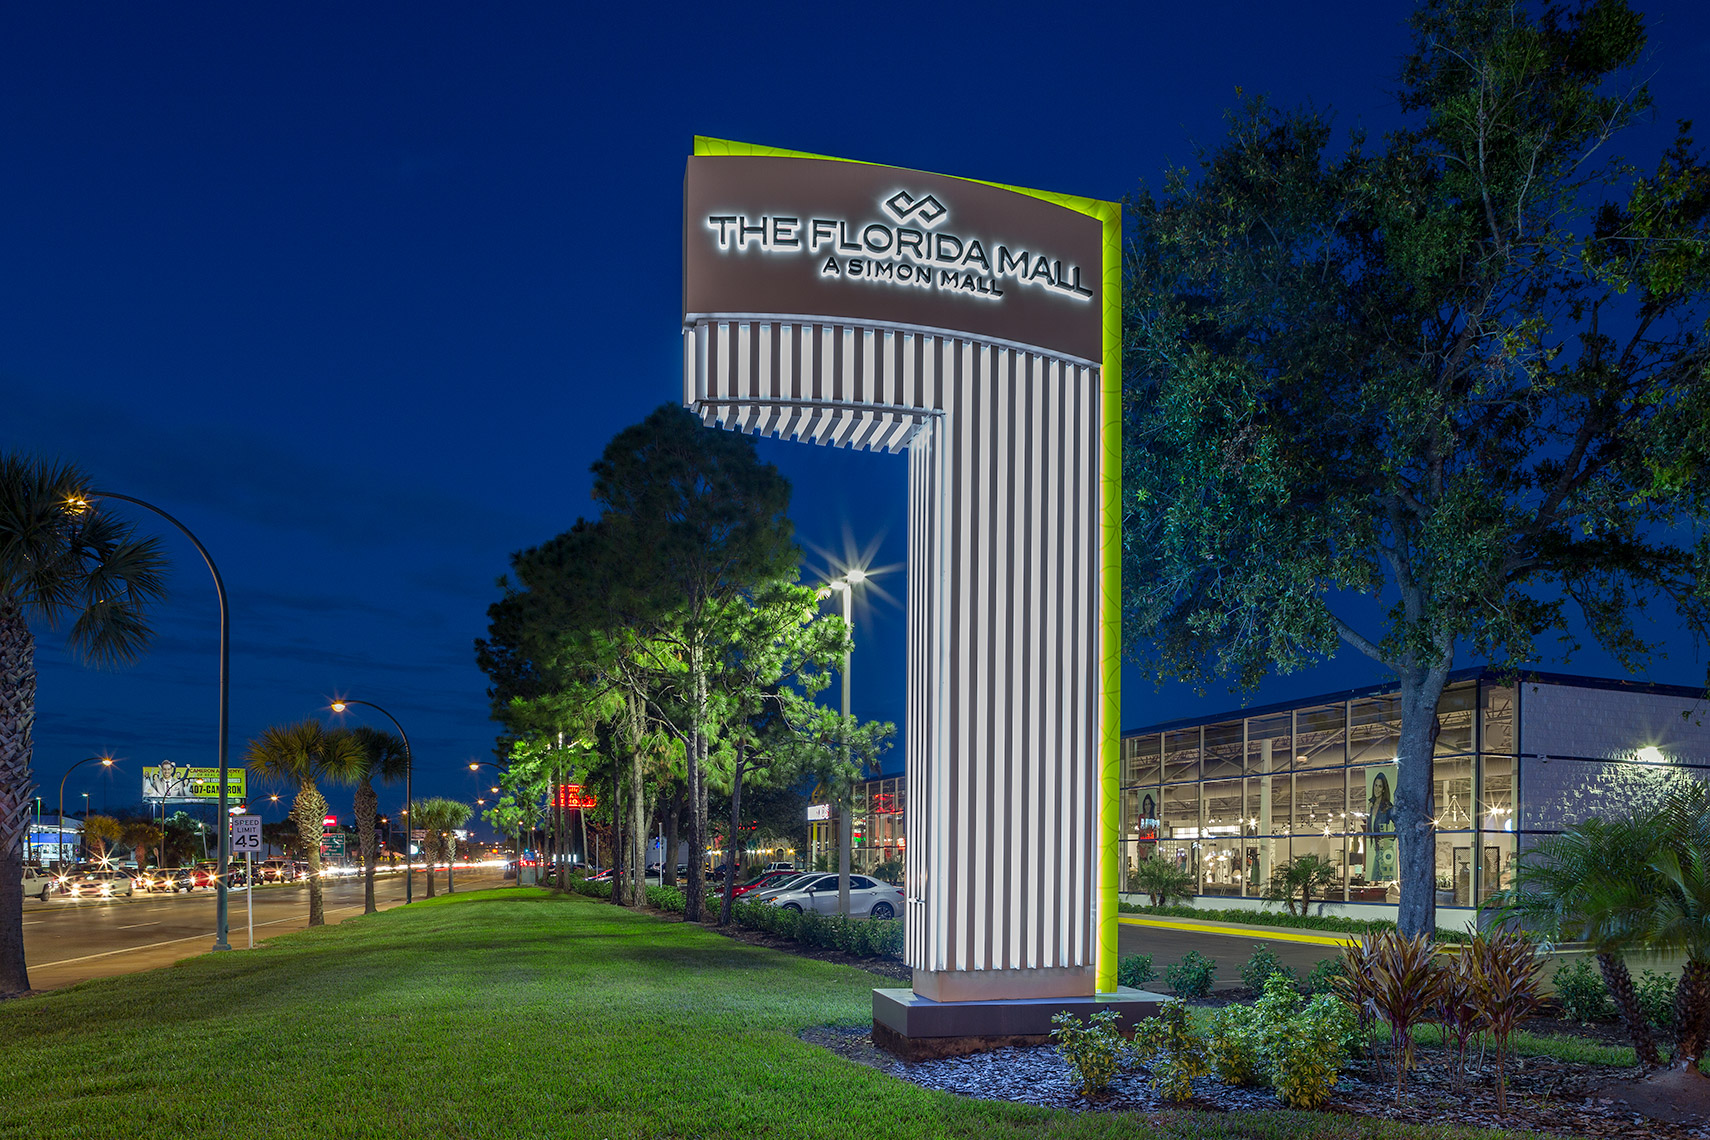 The Florida Mall main signage at night